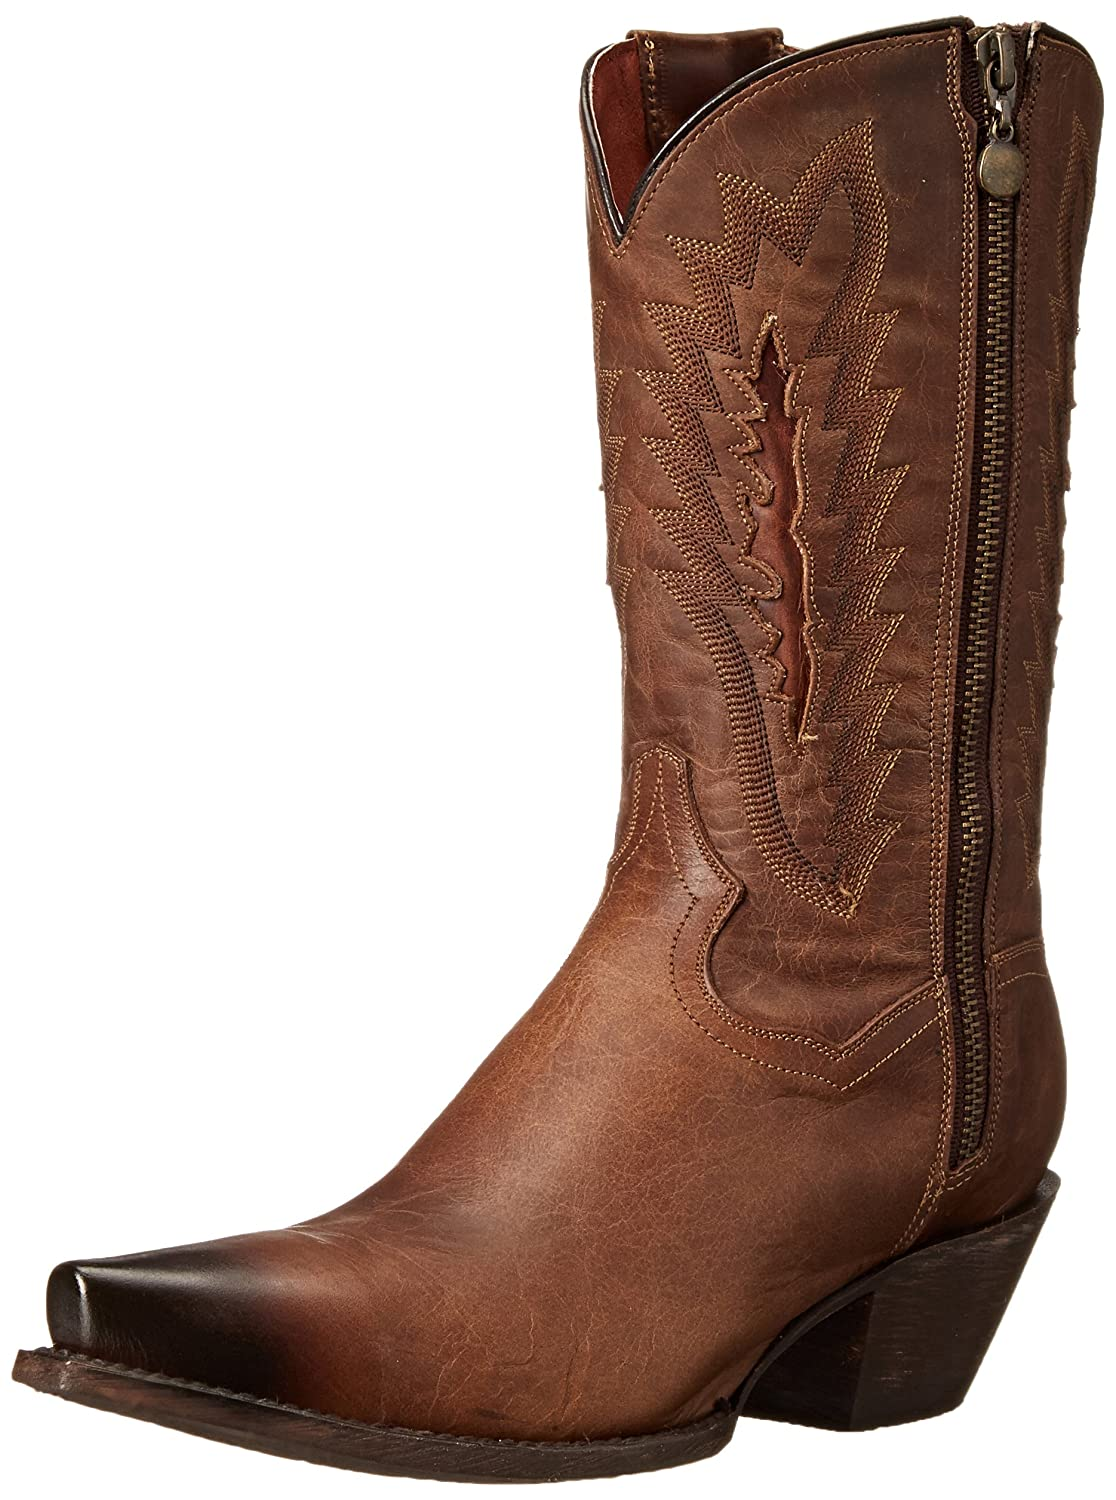 Dan Post Women's Trish Western Boot B00UUH82CQ 8.5 B(M) US|Tan